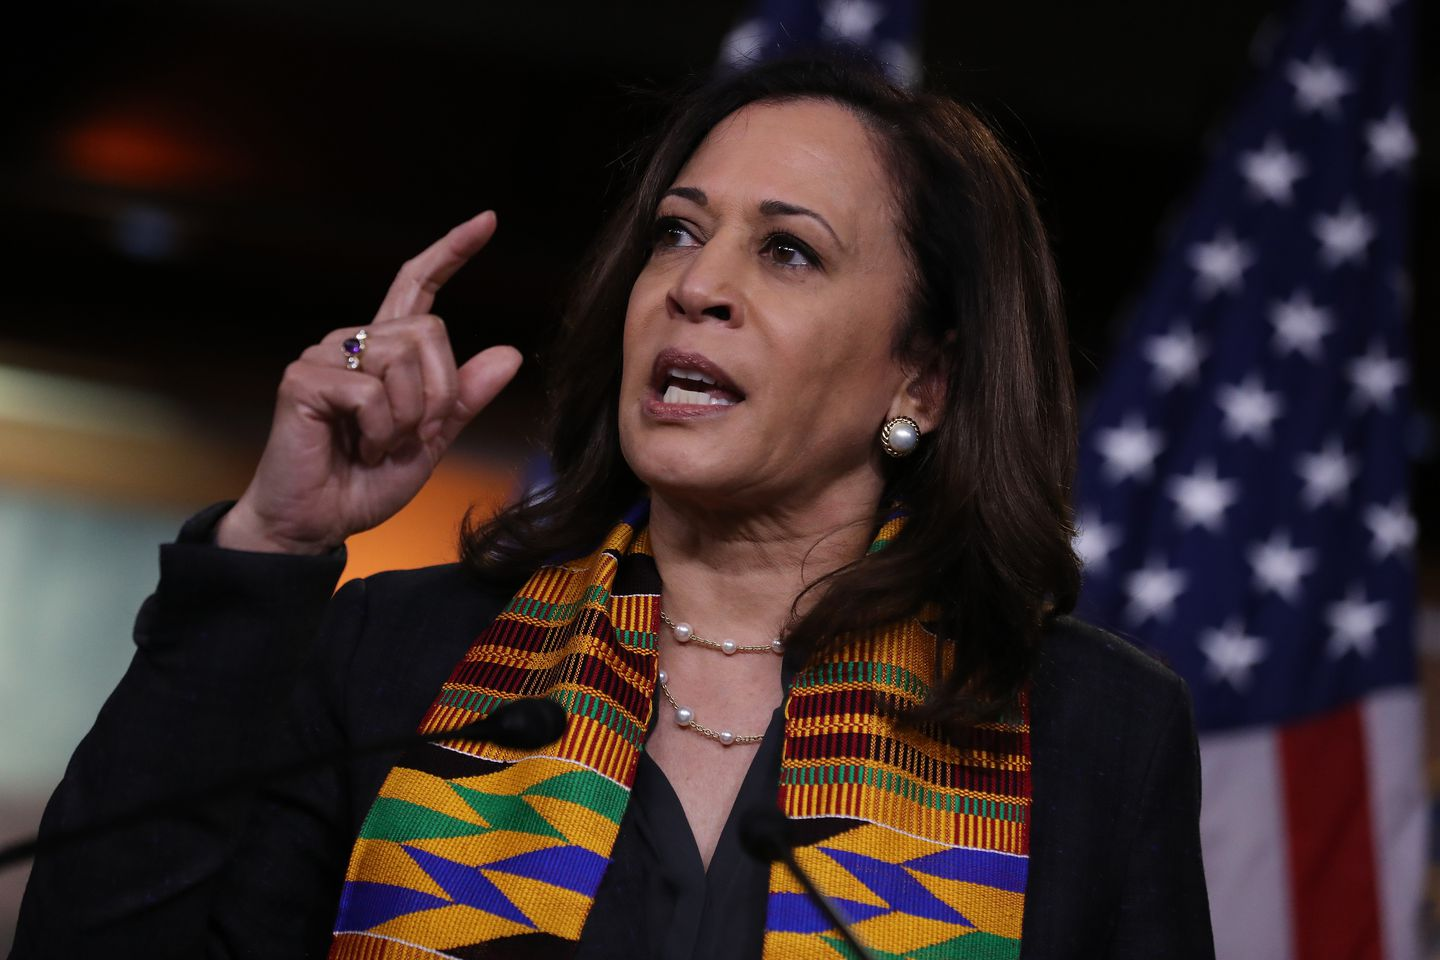 Kamala Harris Rises To A Top Democratic Vp Contender Despite Long Concerns About Her Criminal Justice Past The Boston Globe